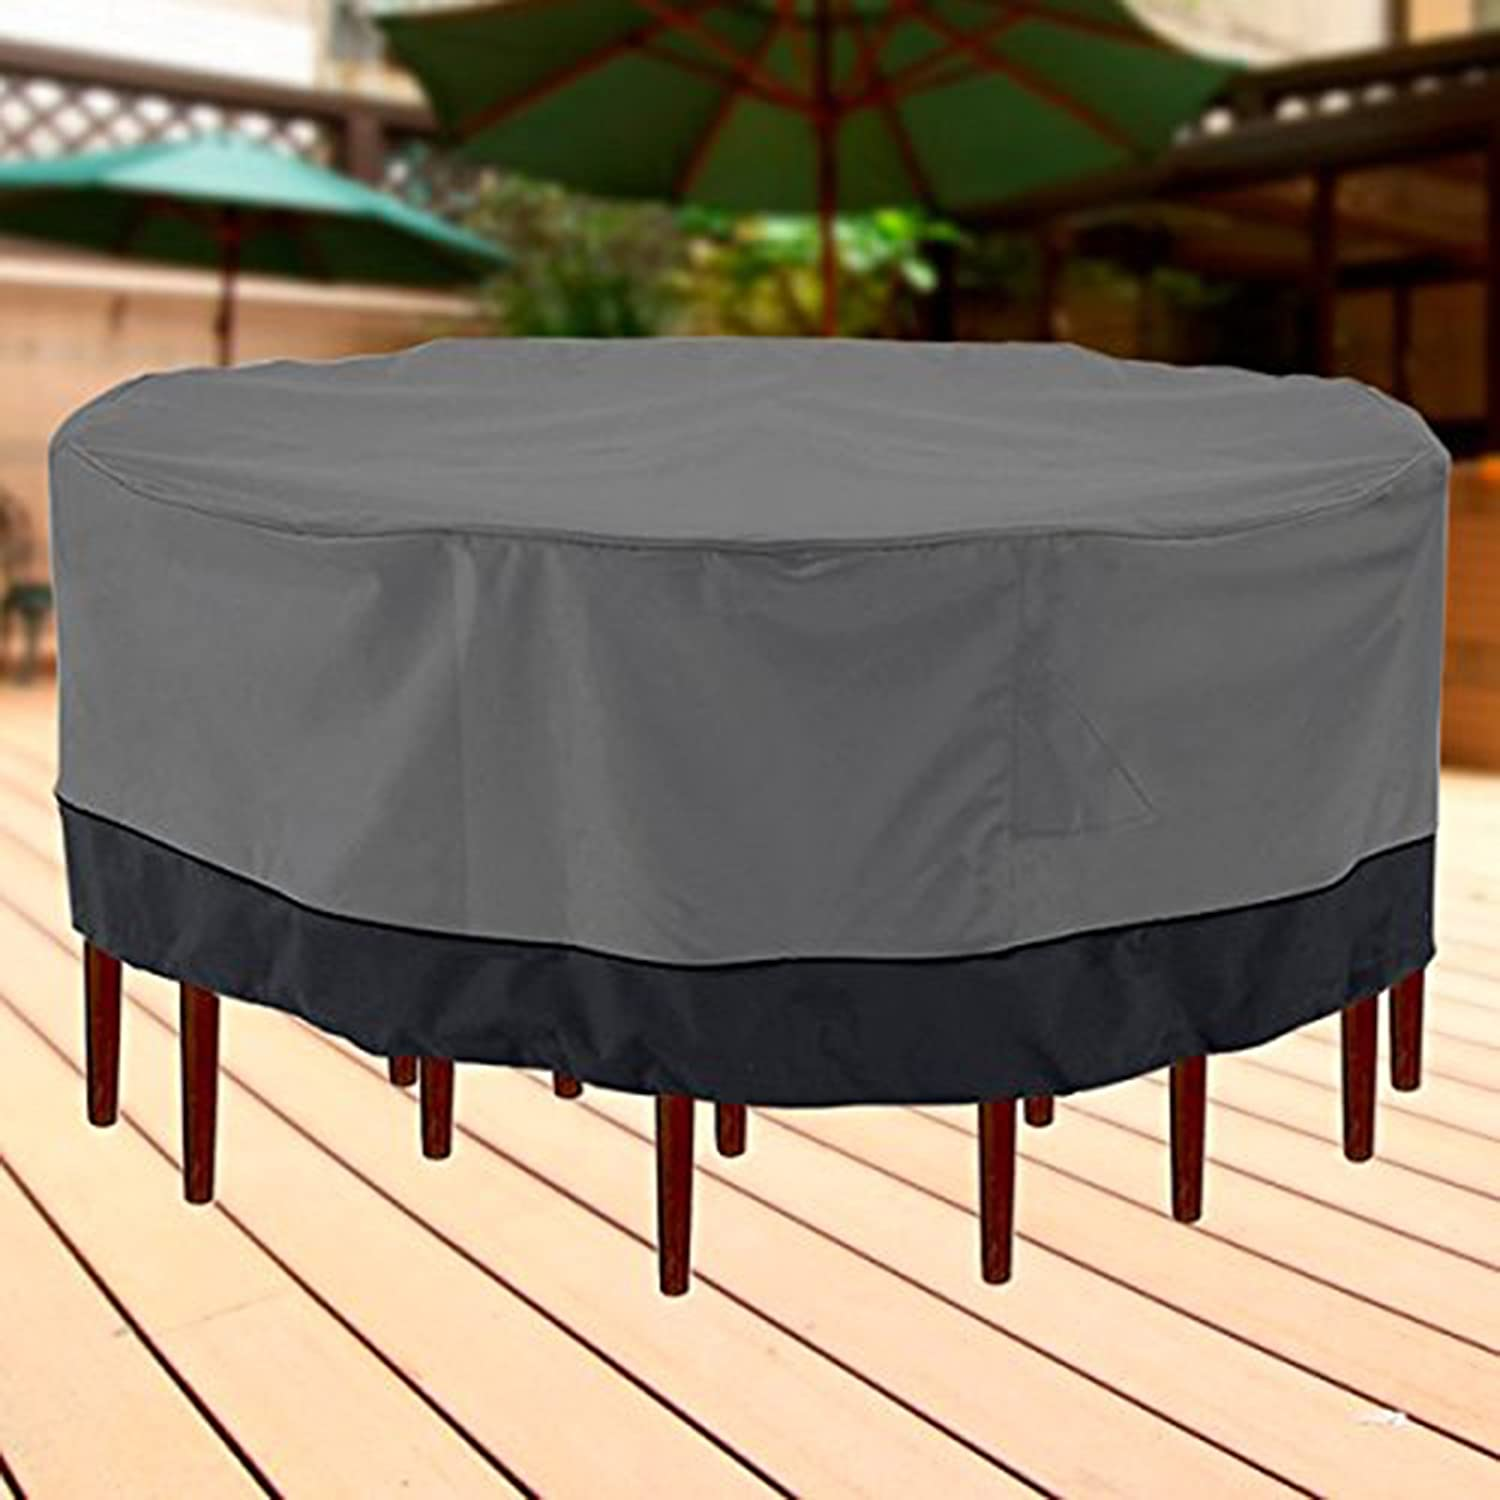 of furniture covers patio for table nice outdoor cover elegant